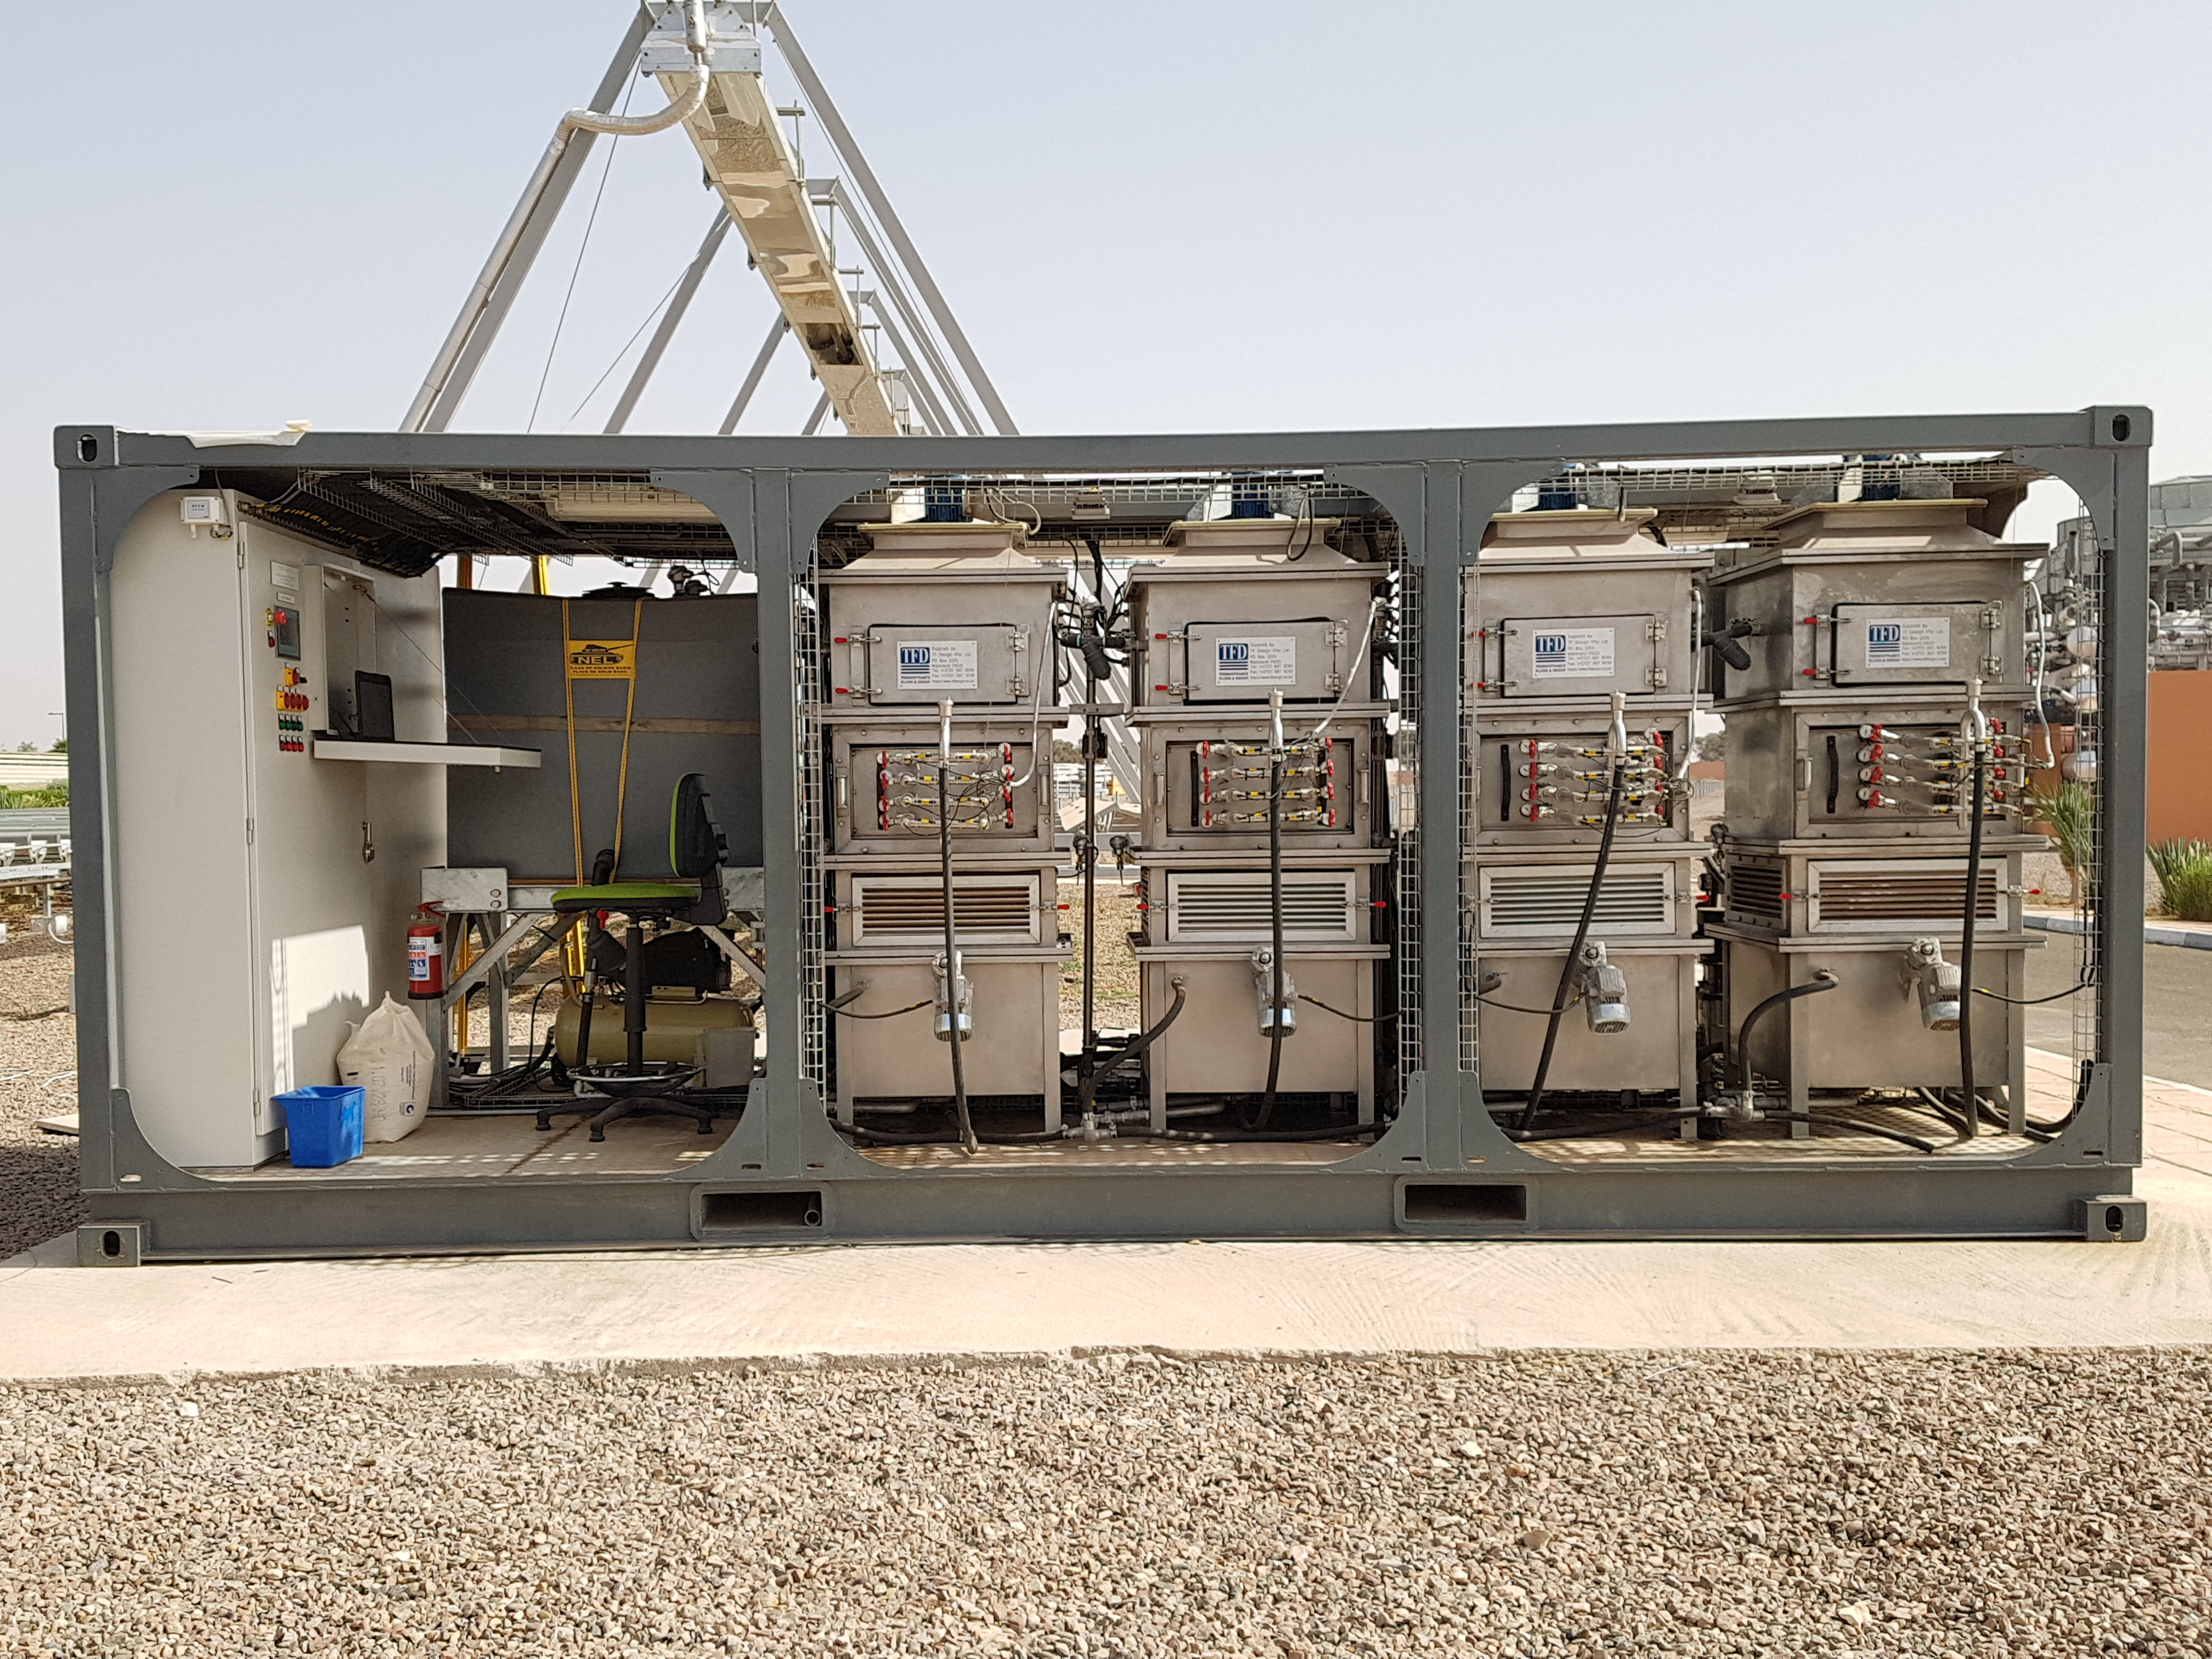 Picture 3: Fouling test rig, Green Energy Park in Morocco (photo: IRESEN/ENEXIO)